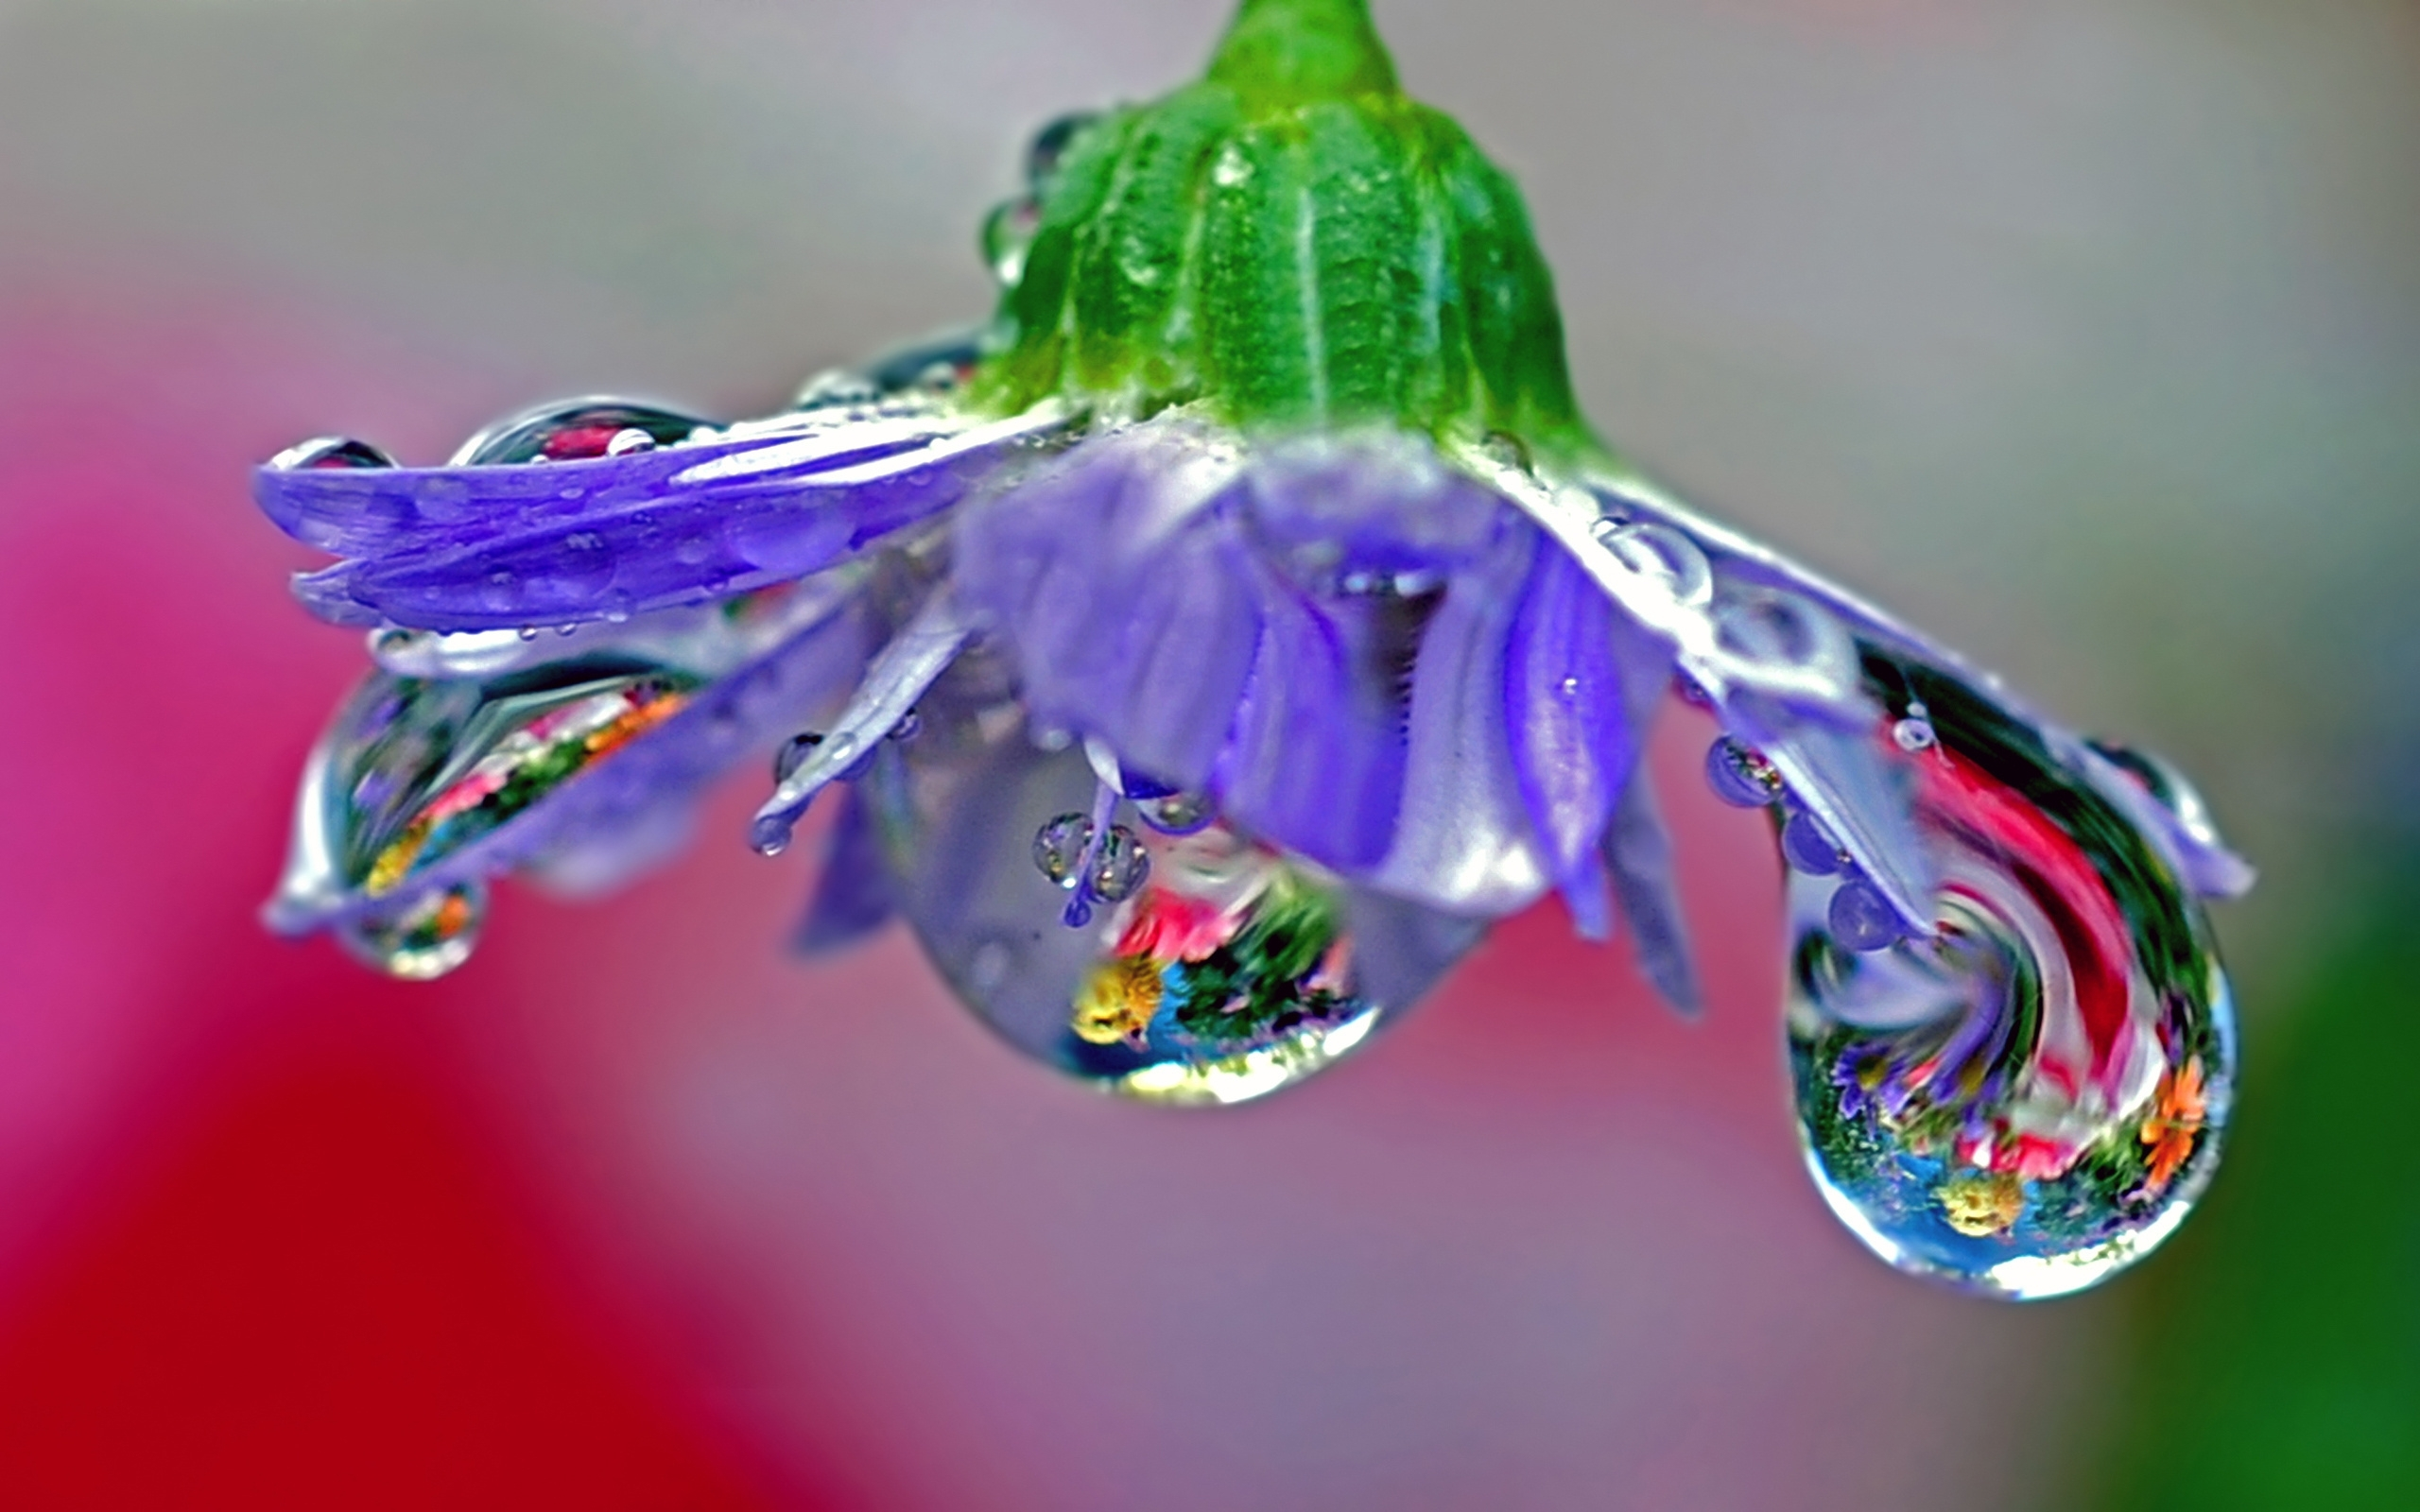 26732 download wallpaper Plants, Flowers, Drops screensavers and pictures for free